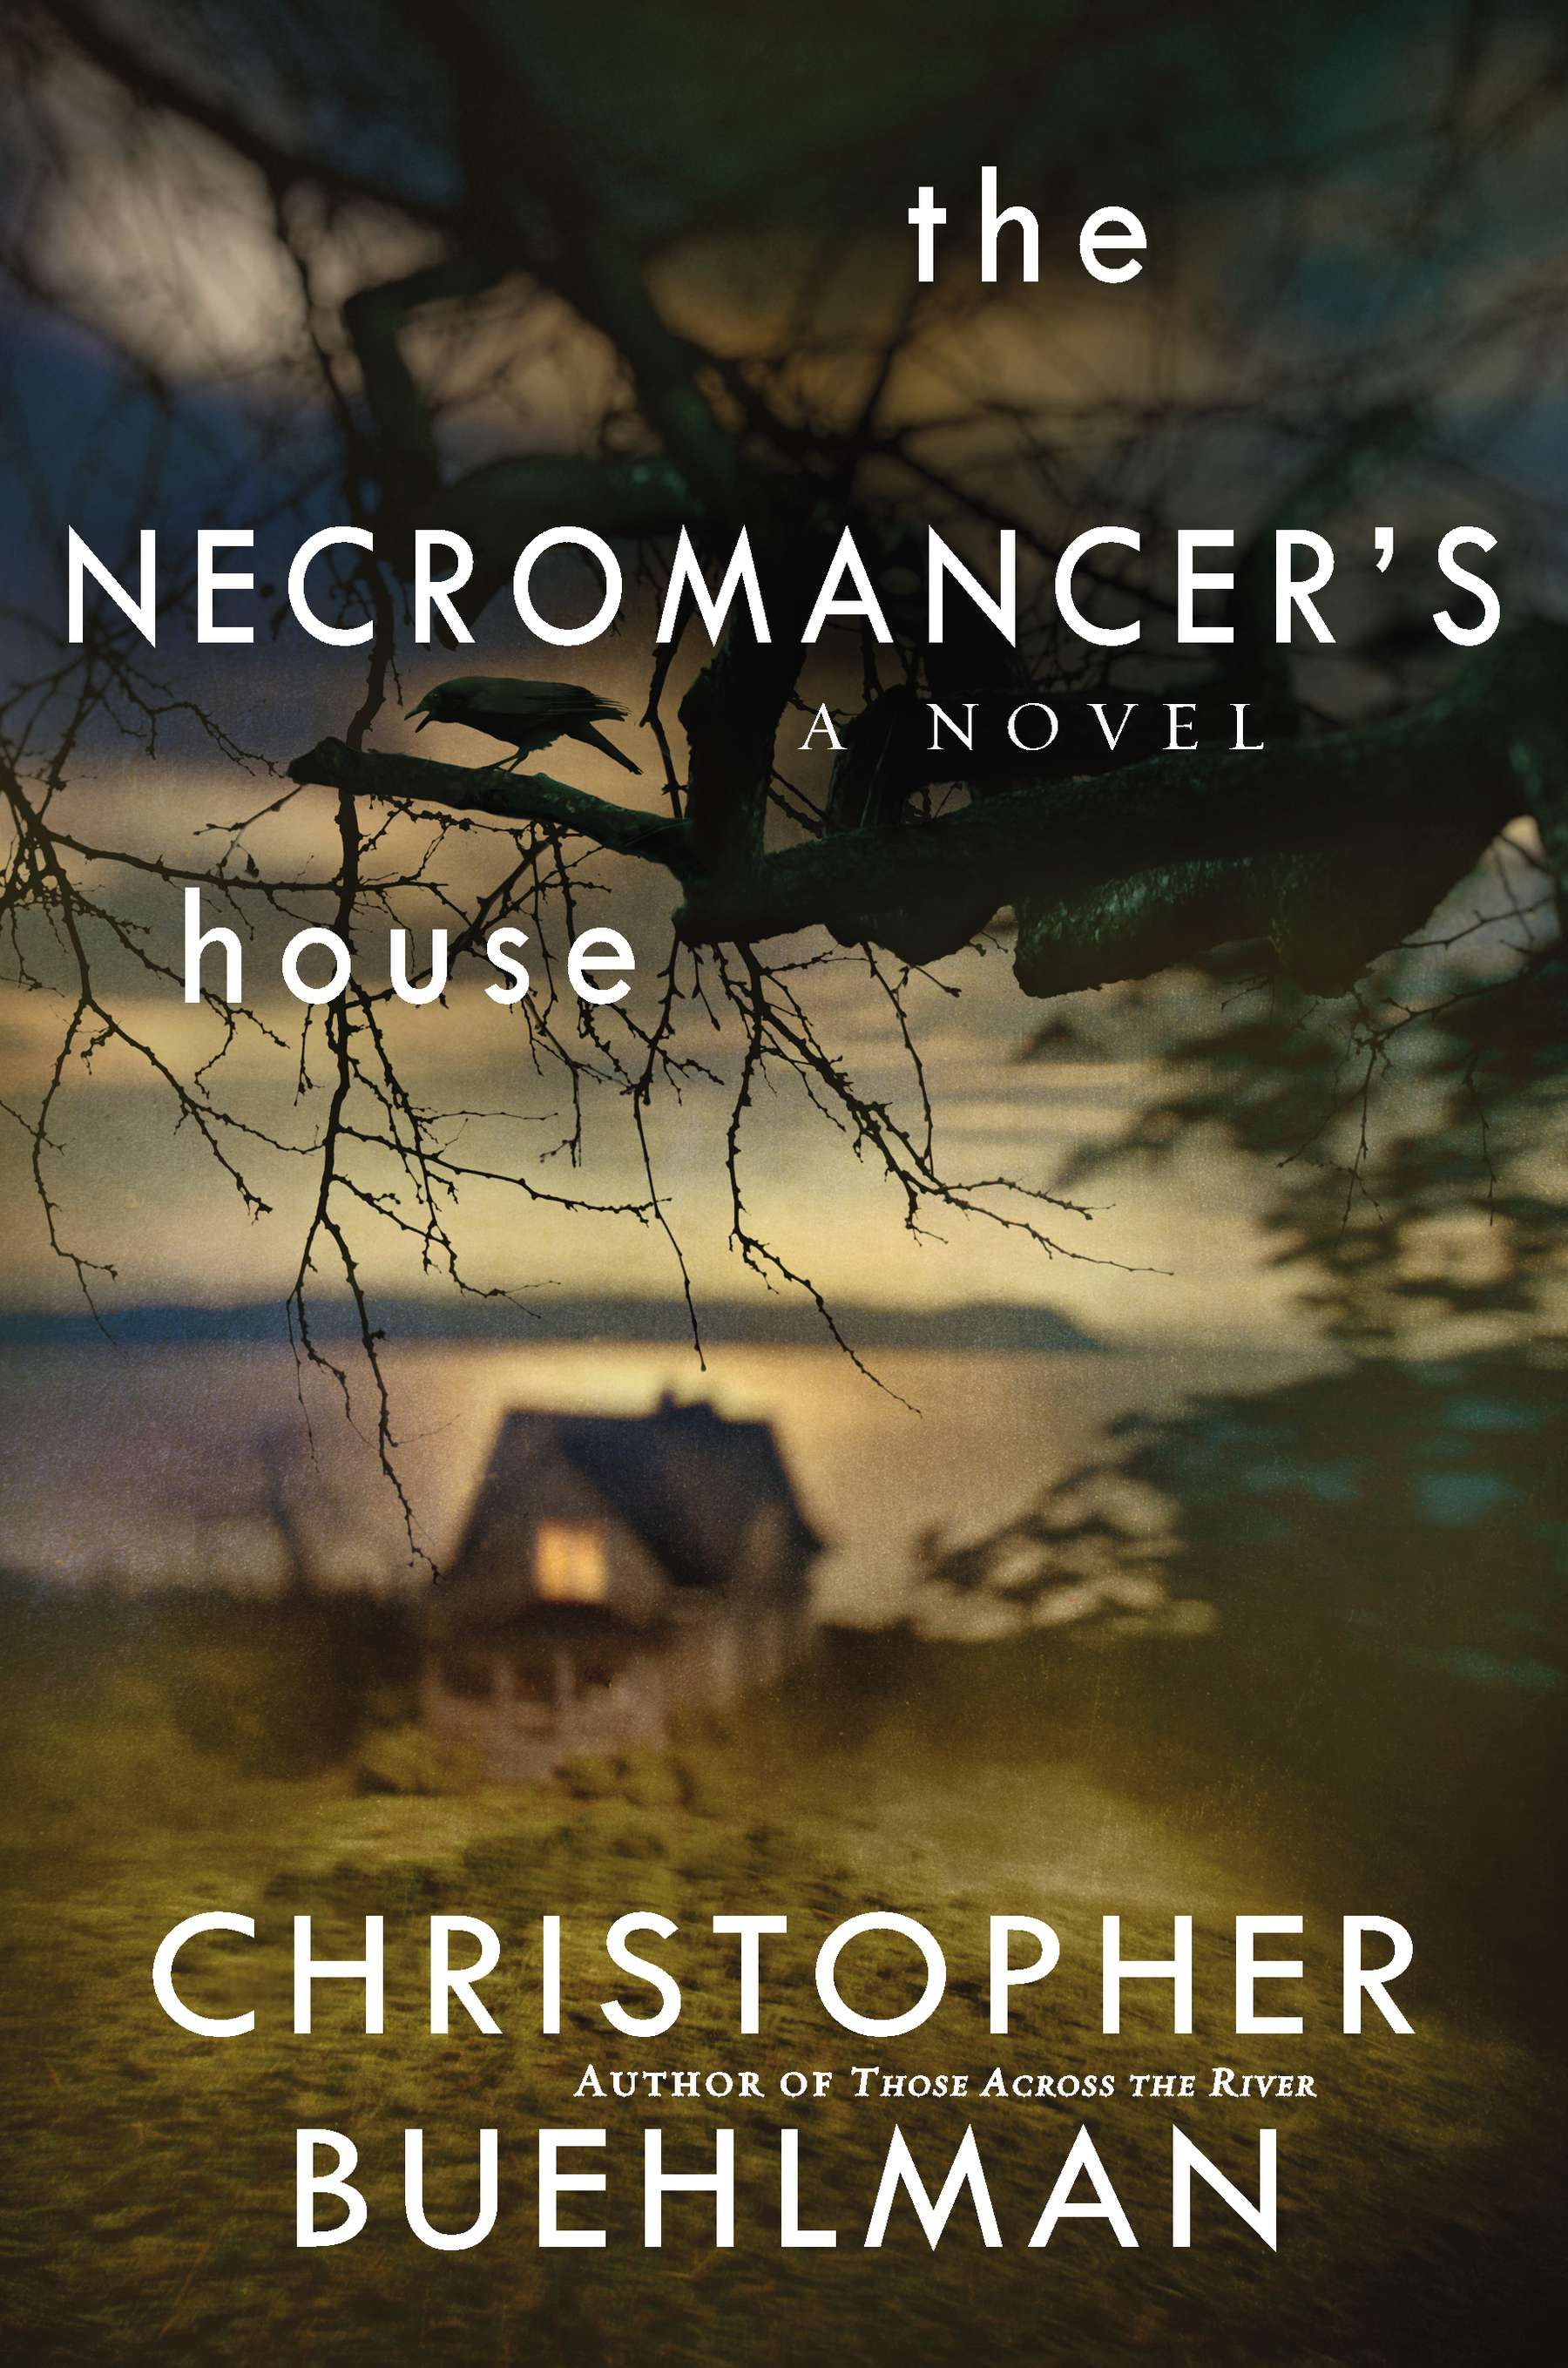 Christopher Buehlman S Novel The Necromancer S House Is One Of